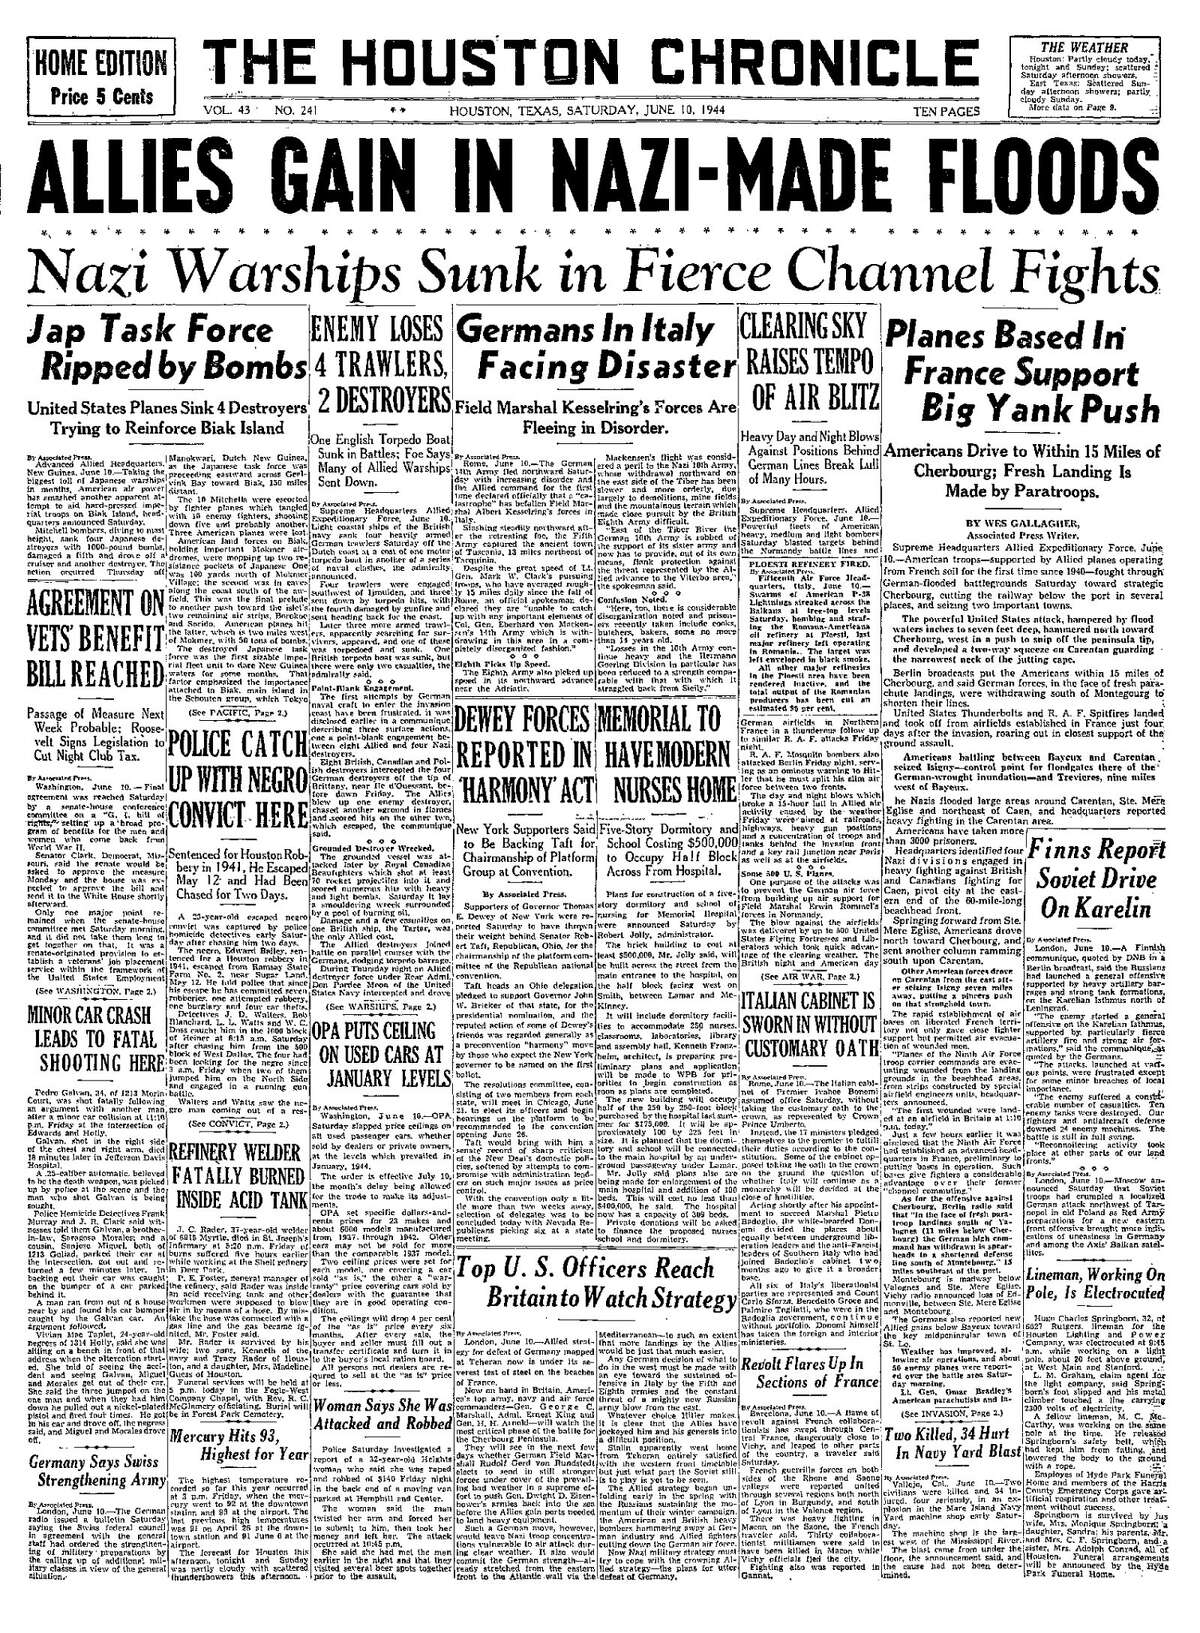 Vol. 43 No. 241 Houston, Texas Saturday, June 10, 1944 (As it appeared in the Houston Chronicle)